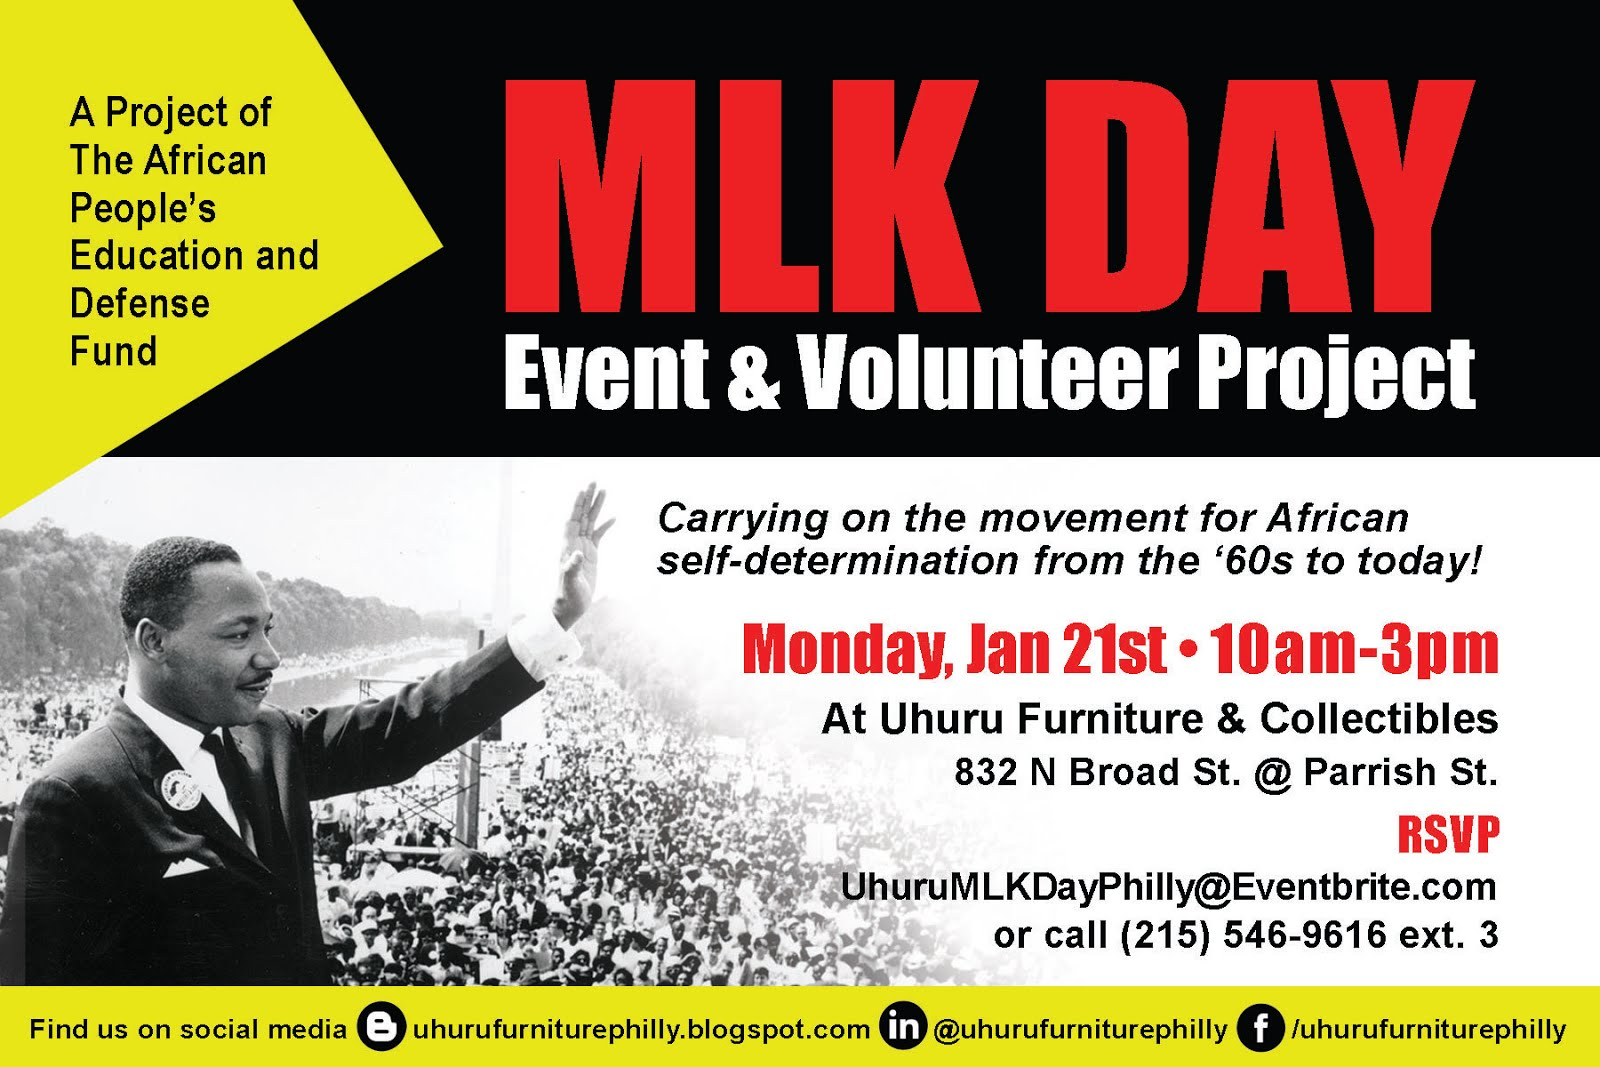 MLK Day Event & Volunteer Project Mon. Jan 21 Register Today!